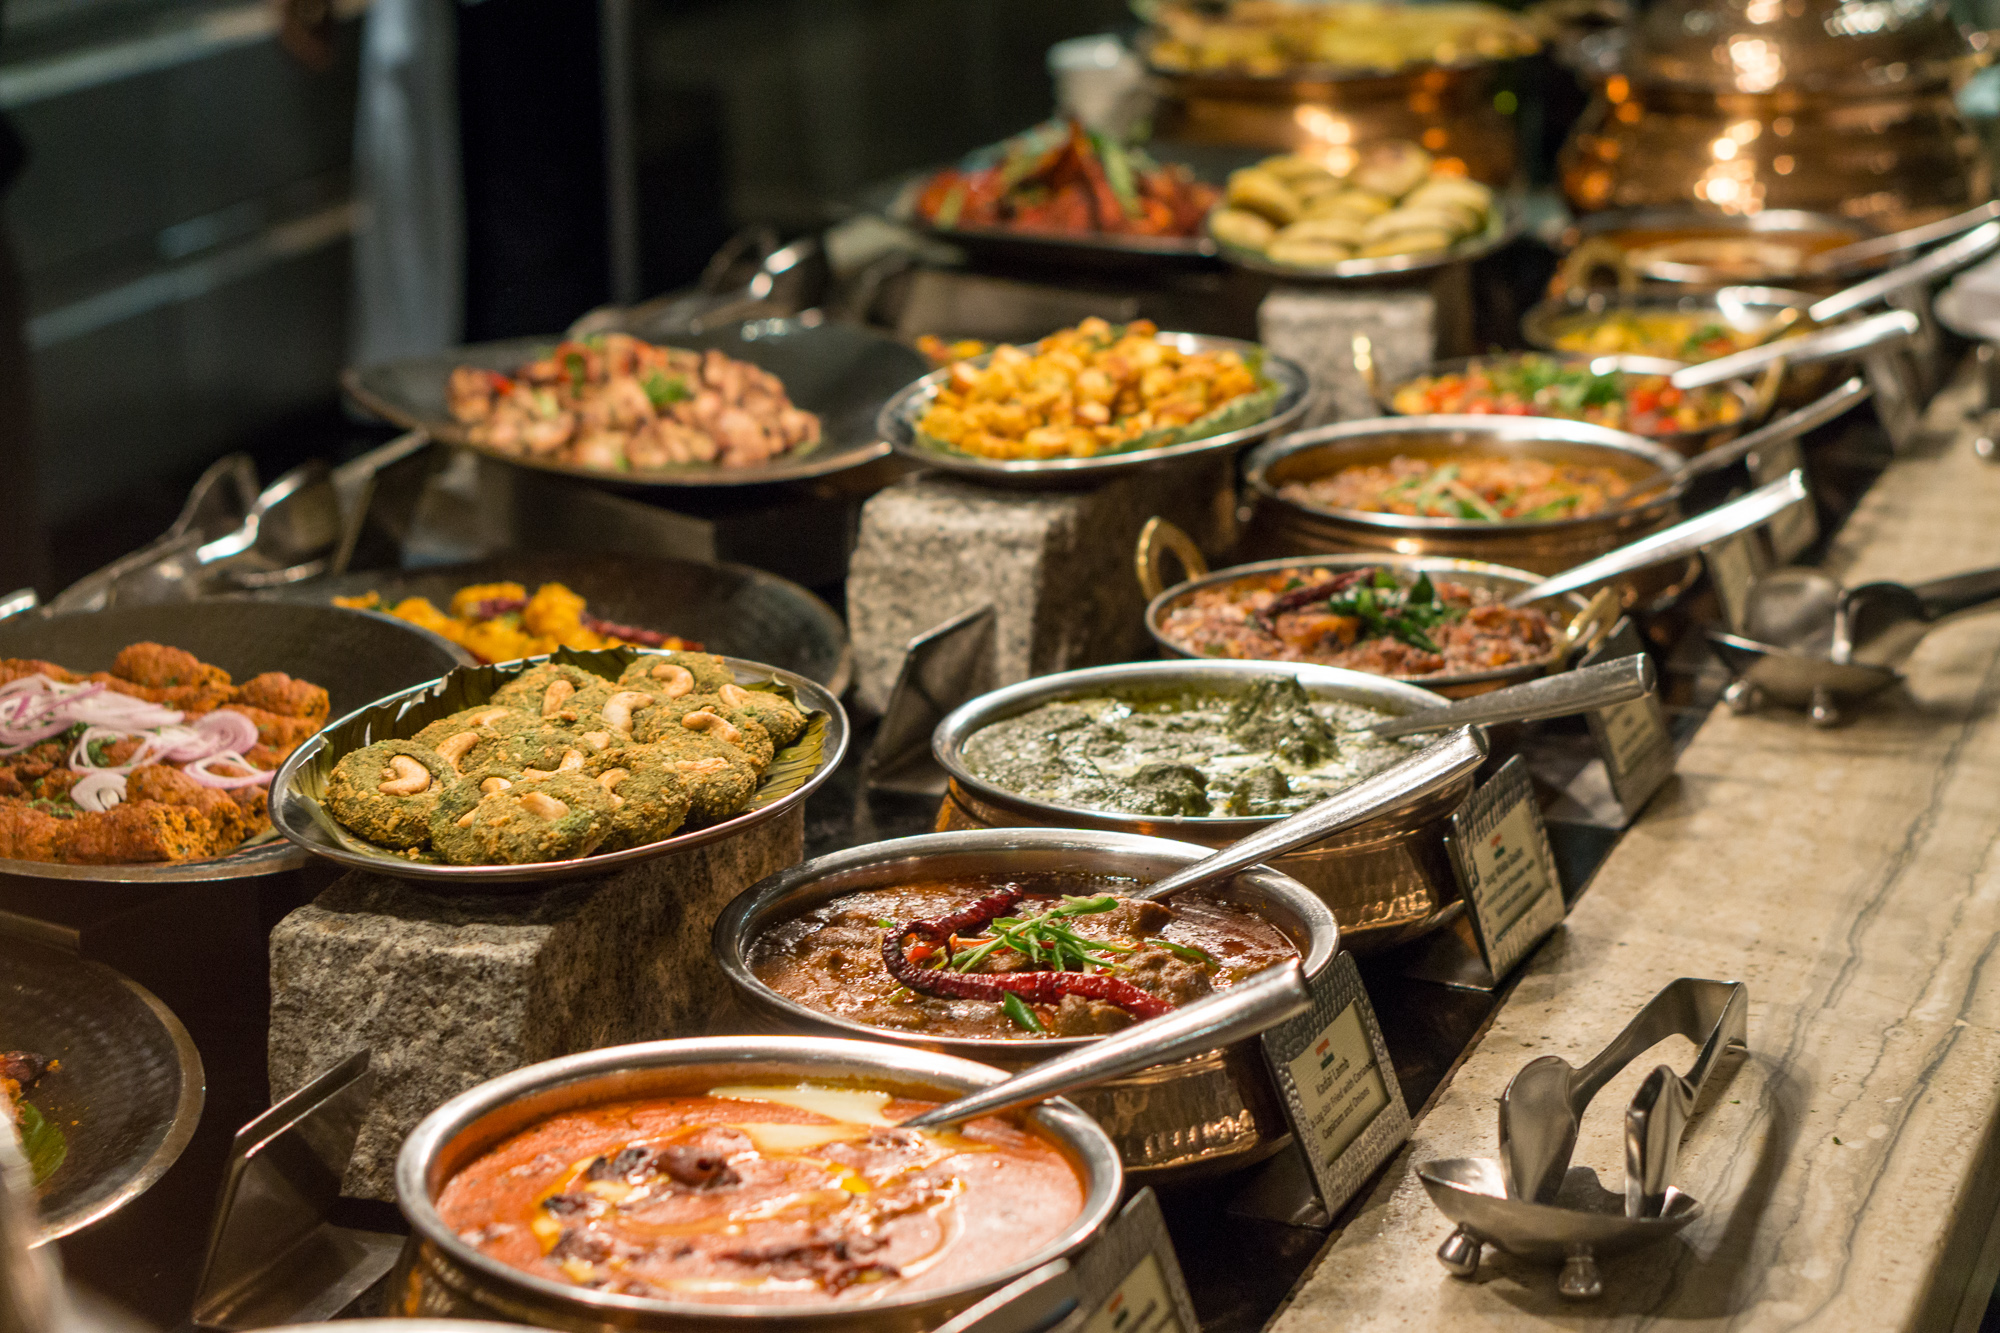 Indian Food Festival at Melt Cafe Mandarin Oriental Singapore - Indian Counter Spread 1